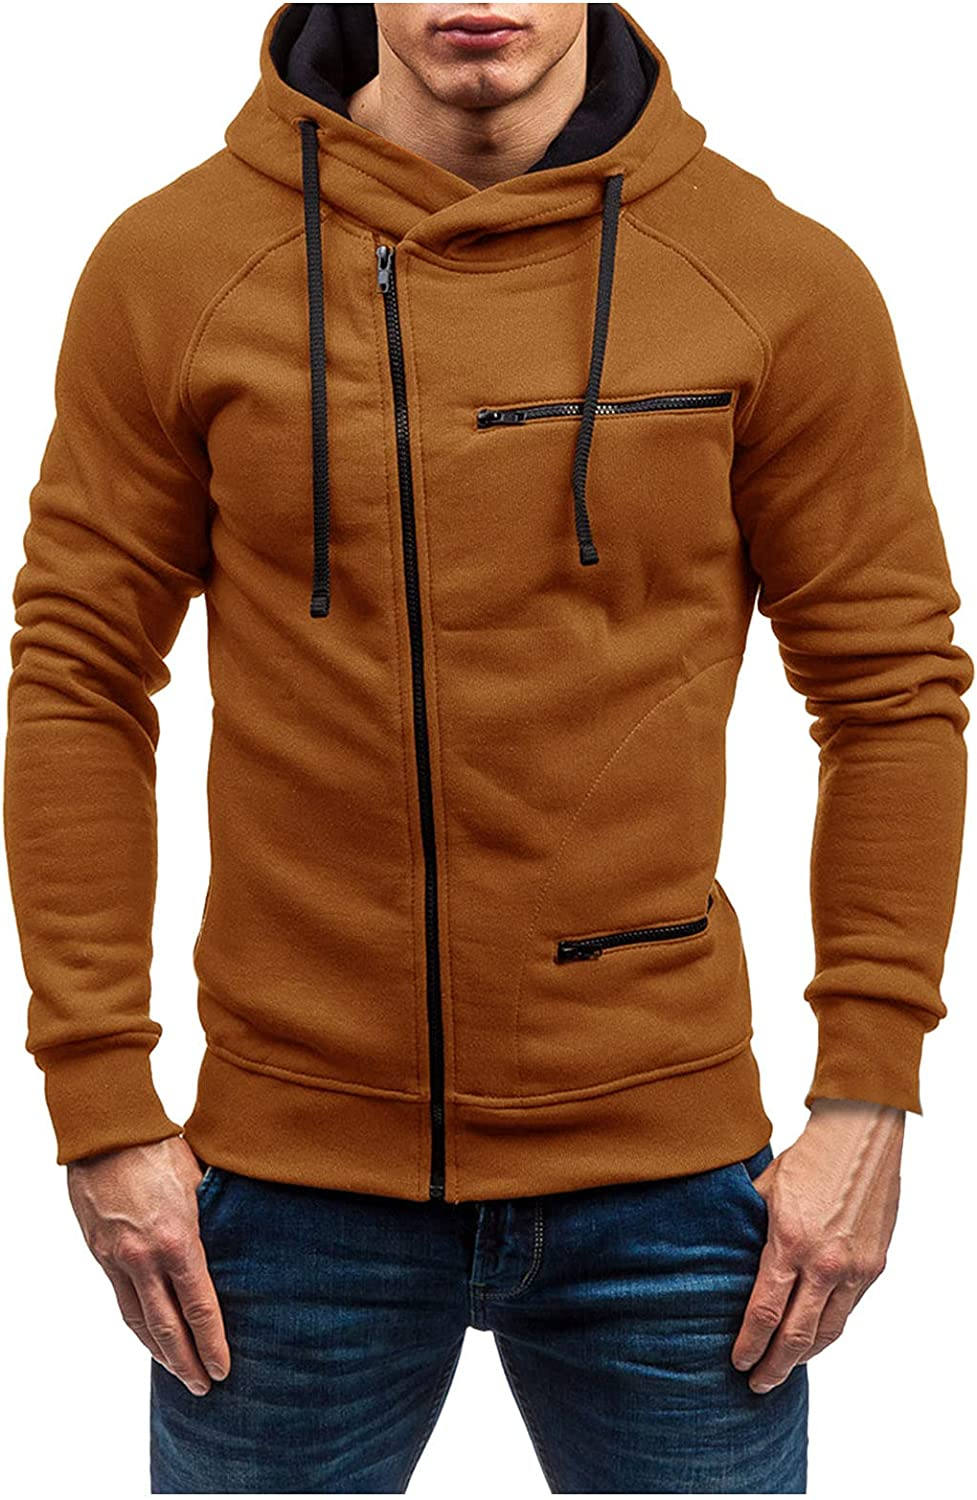 HONGJ Zipper Hoodies for Mens, Fall Color Block Drawstring Hooded Sweatshirts Slim Fit Sports Workout Casual Jackets